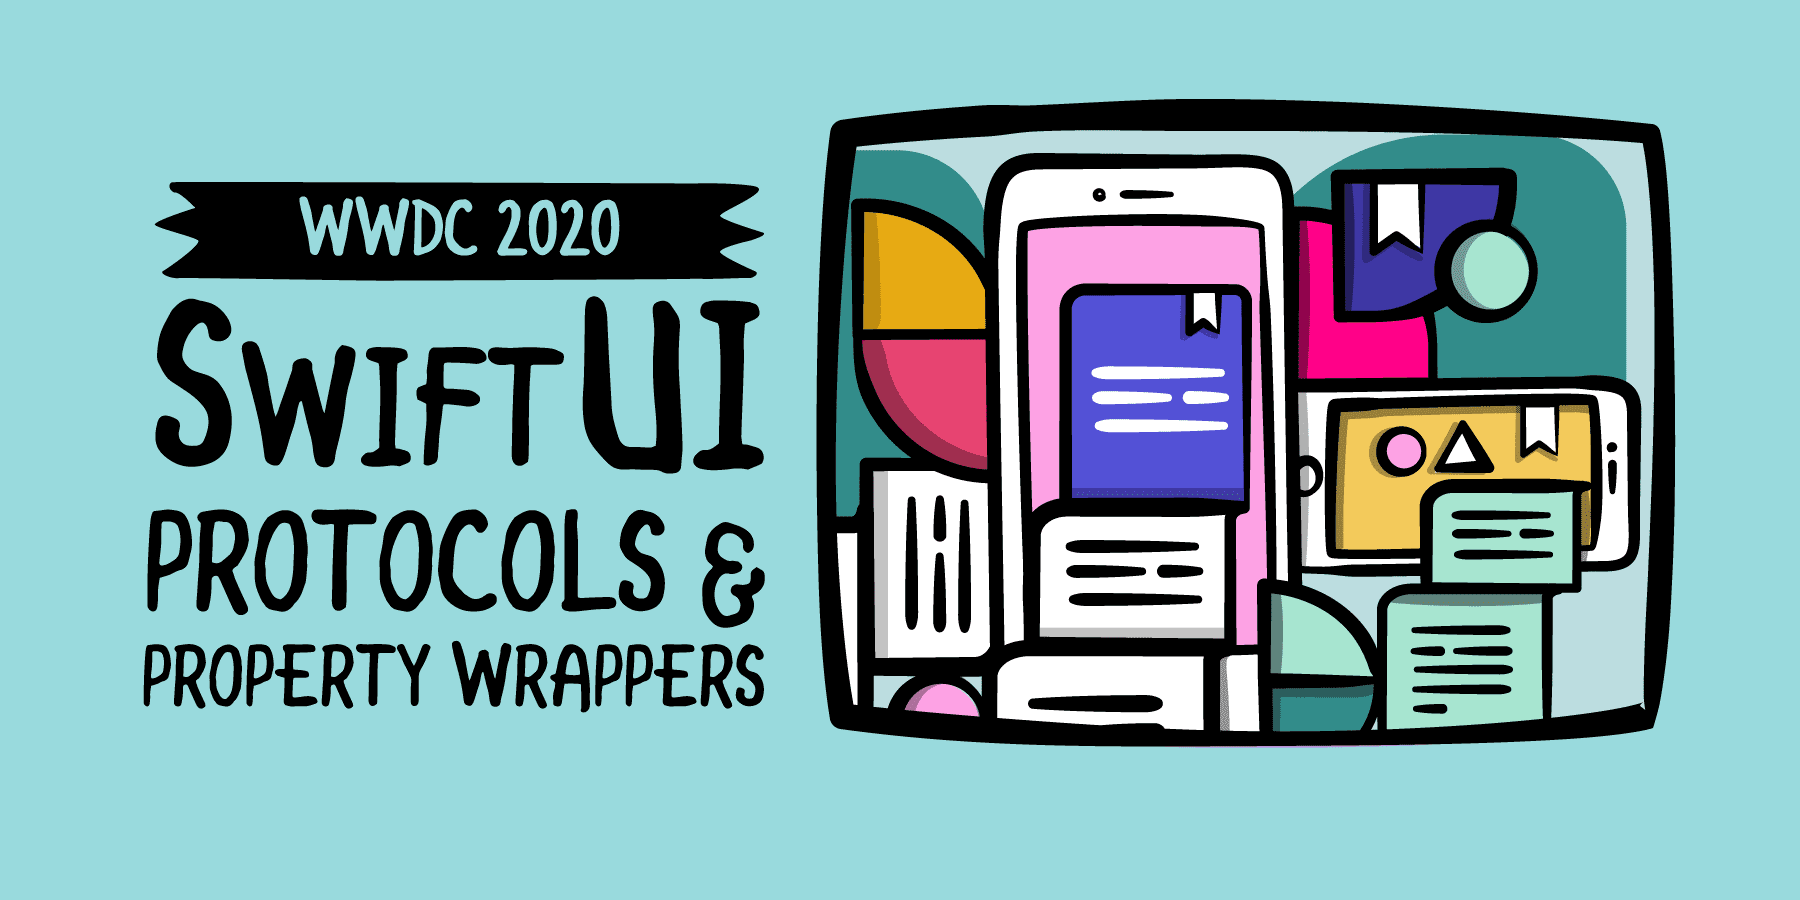 WWDC 2020: SwiftUI Protocols & Property Wrappers [SUBSCRIBER]